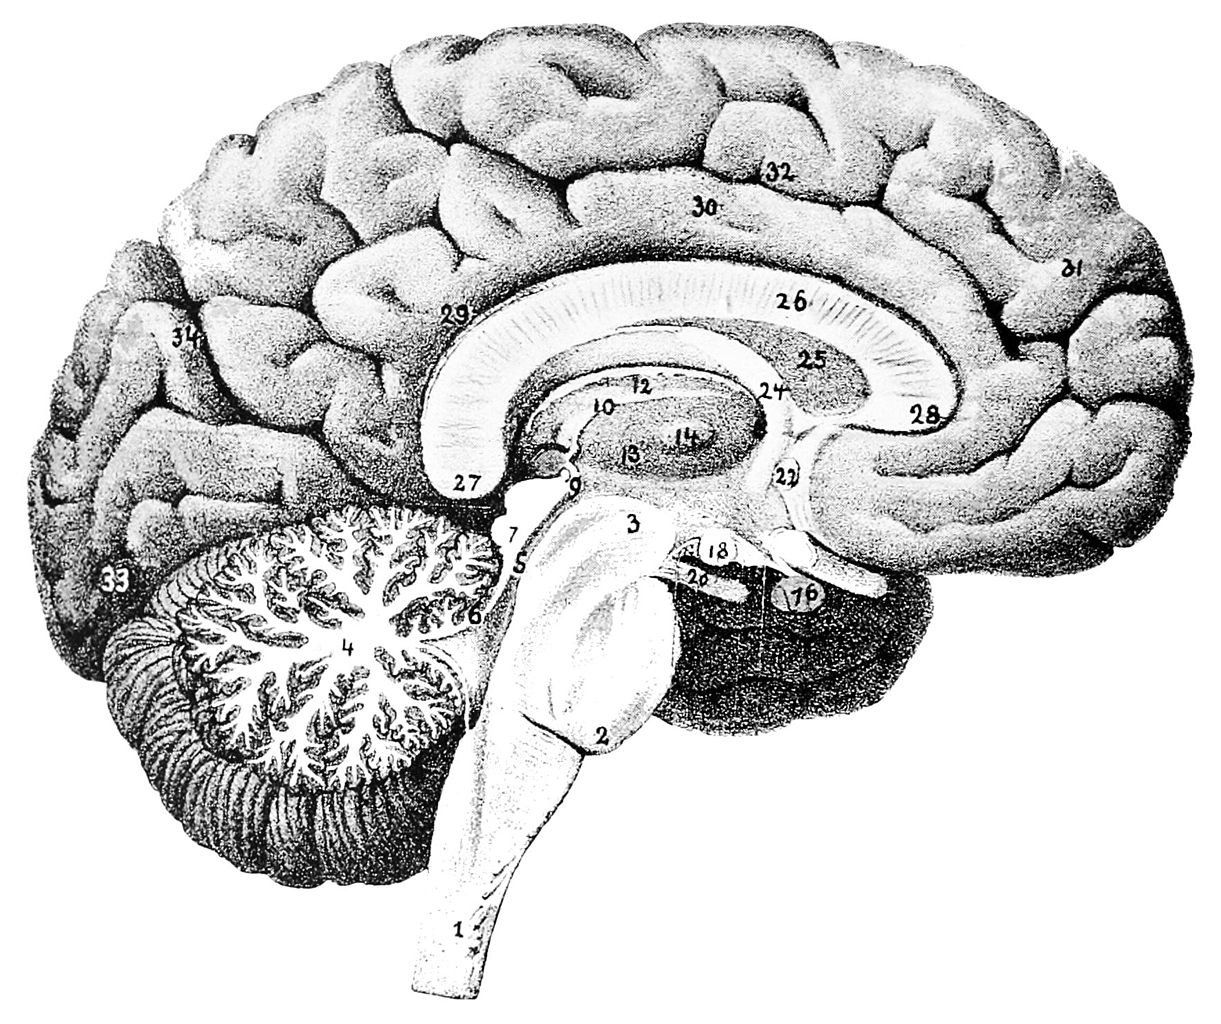 File:PSM V46 D168 Mesial view of the human brain.jpg